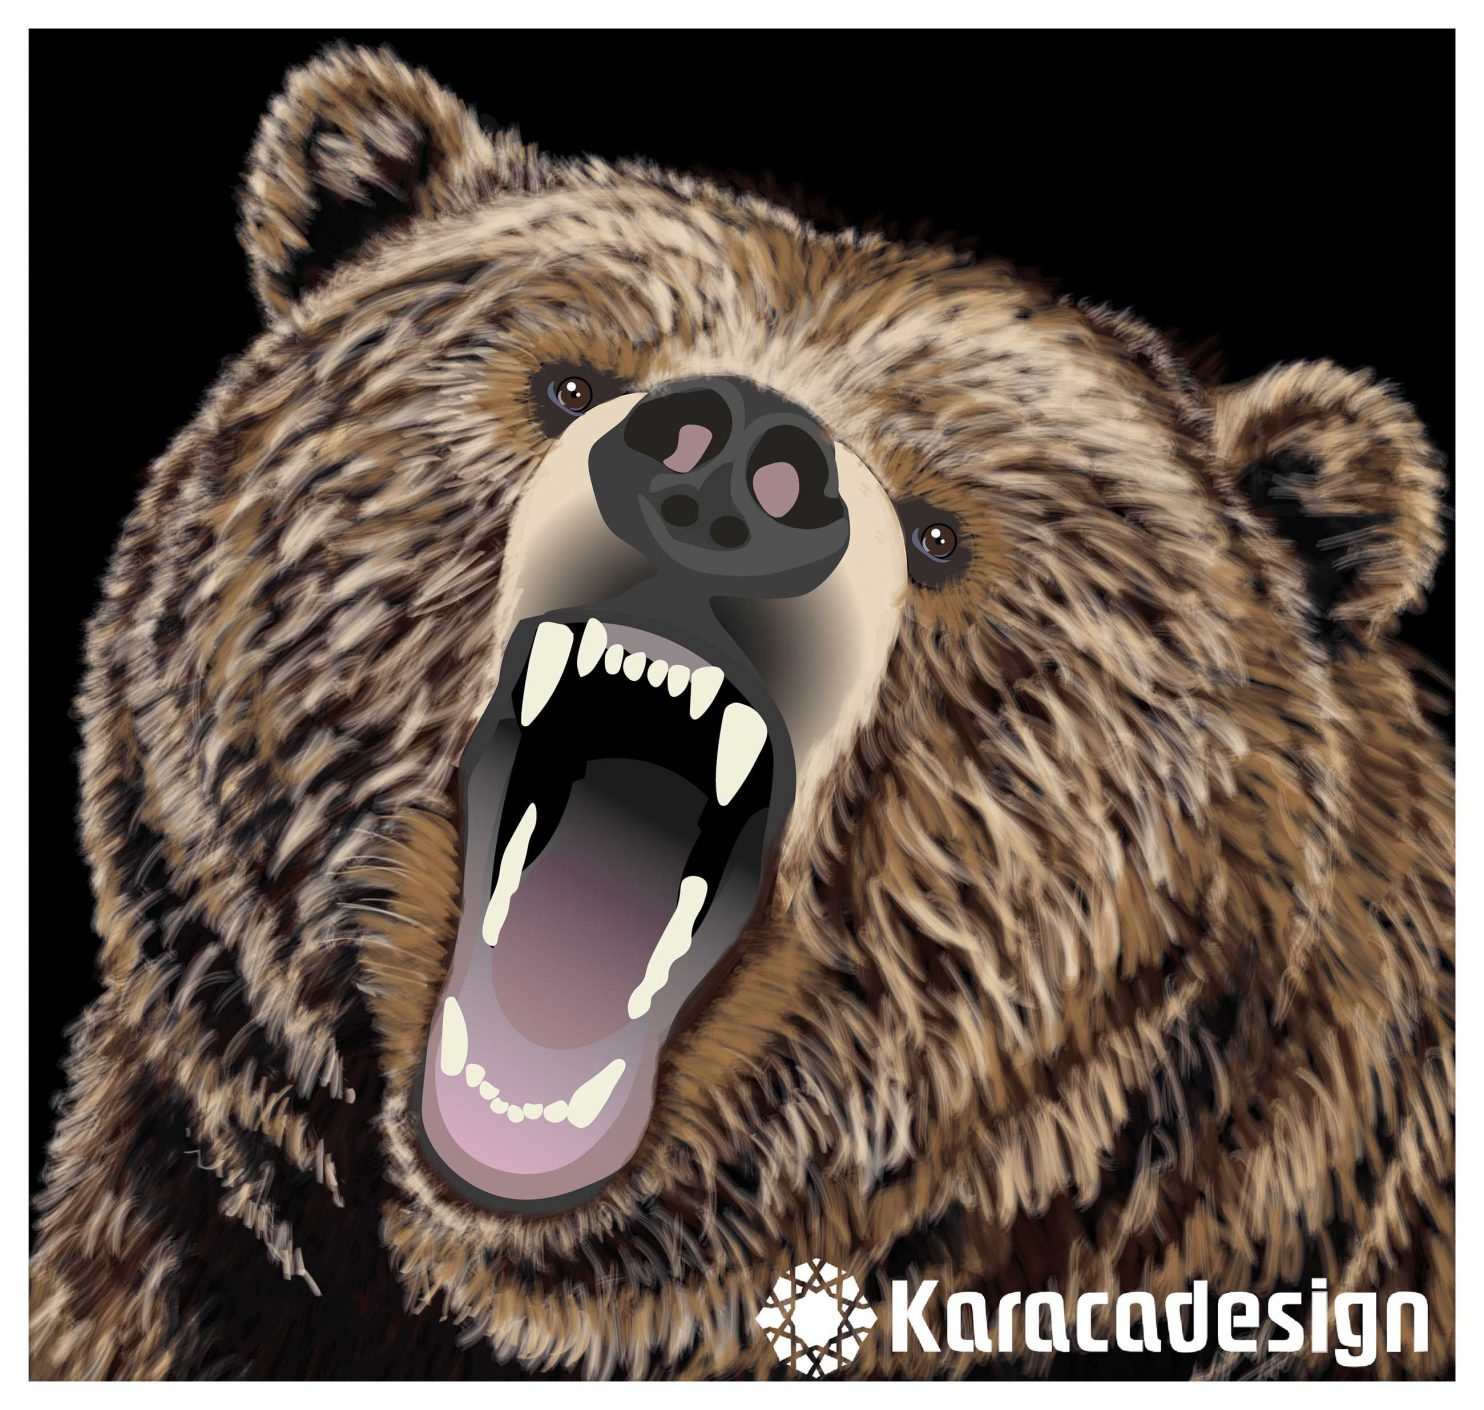 Bear in graphic